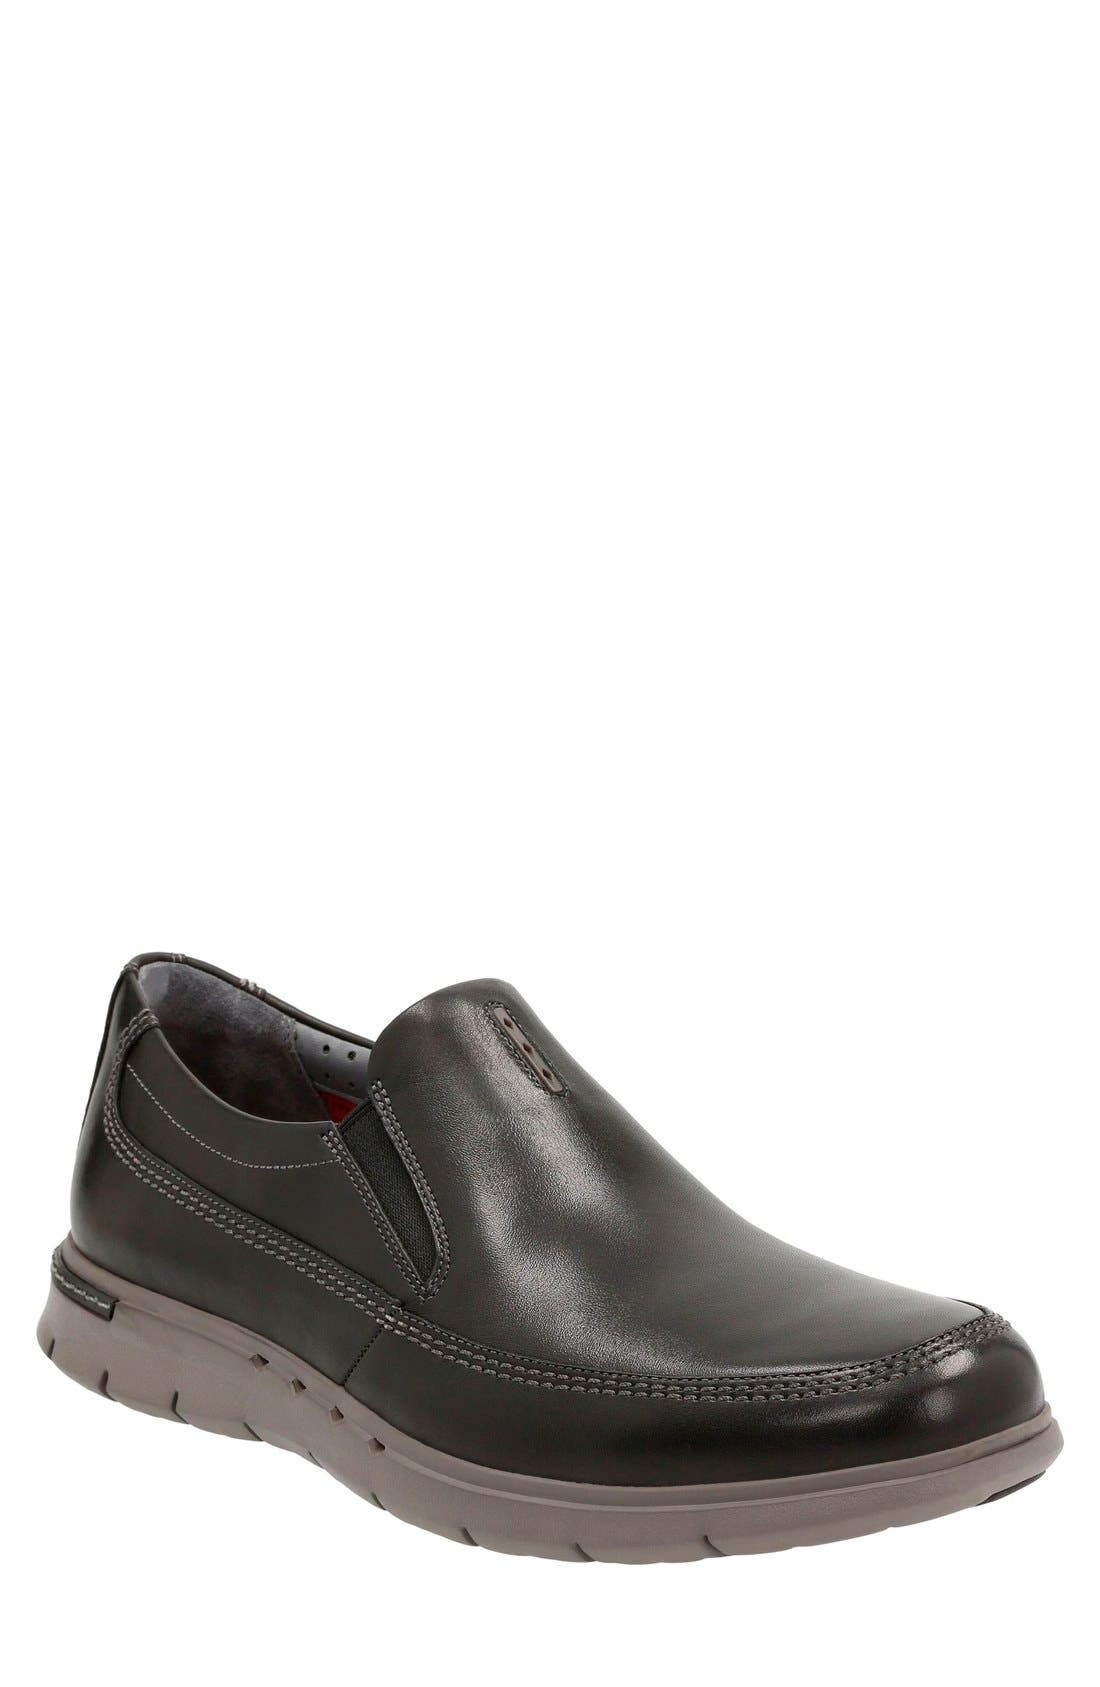 CLARKS<SUP>®</SUP> Un.Byner Slip-On Sneaker